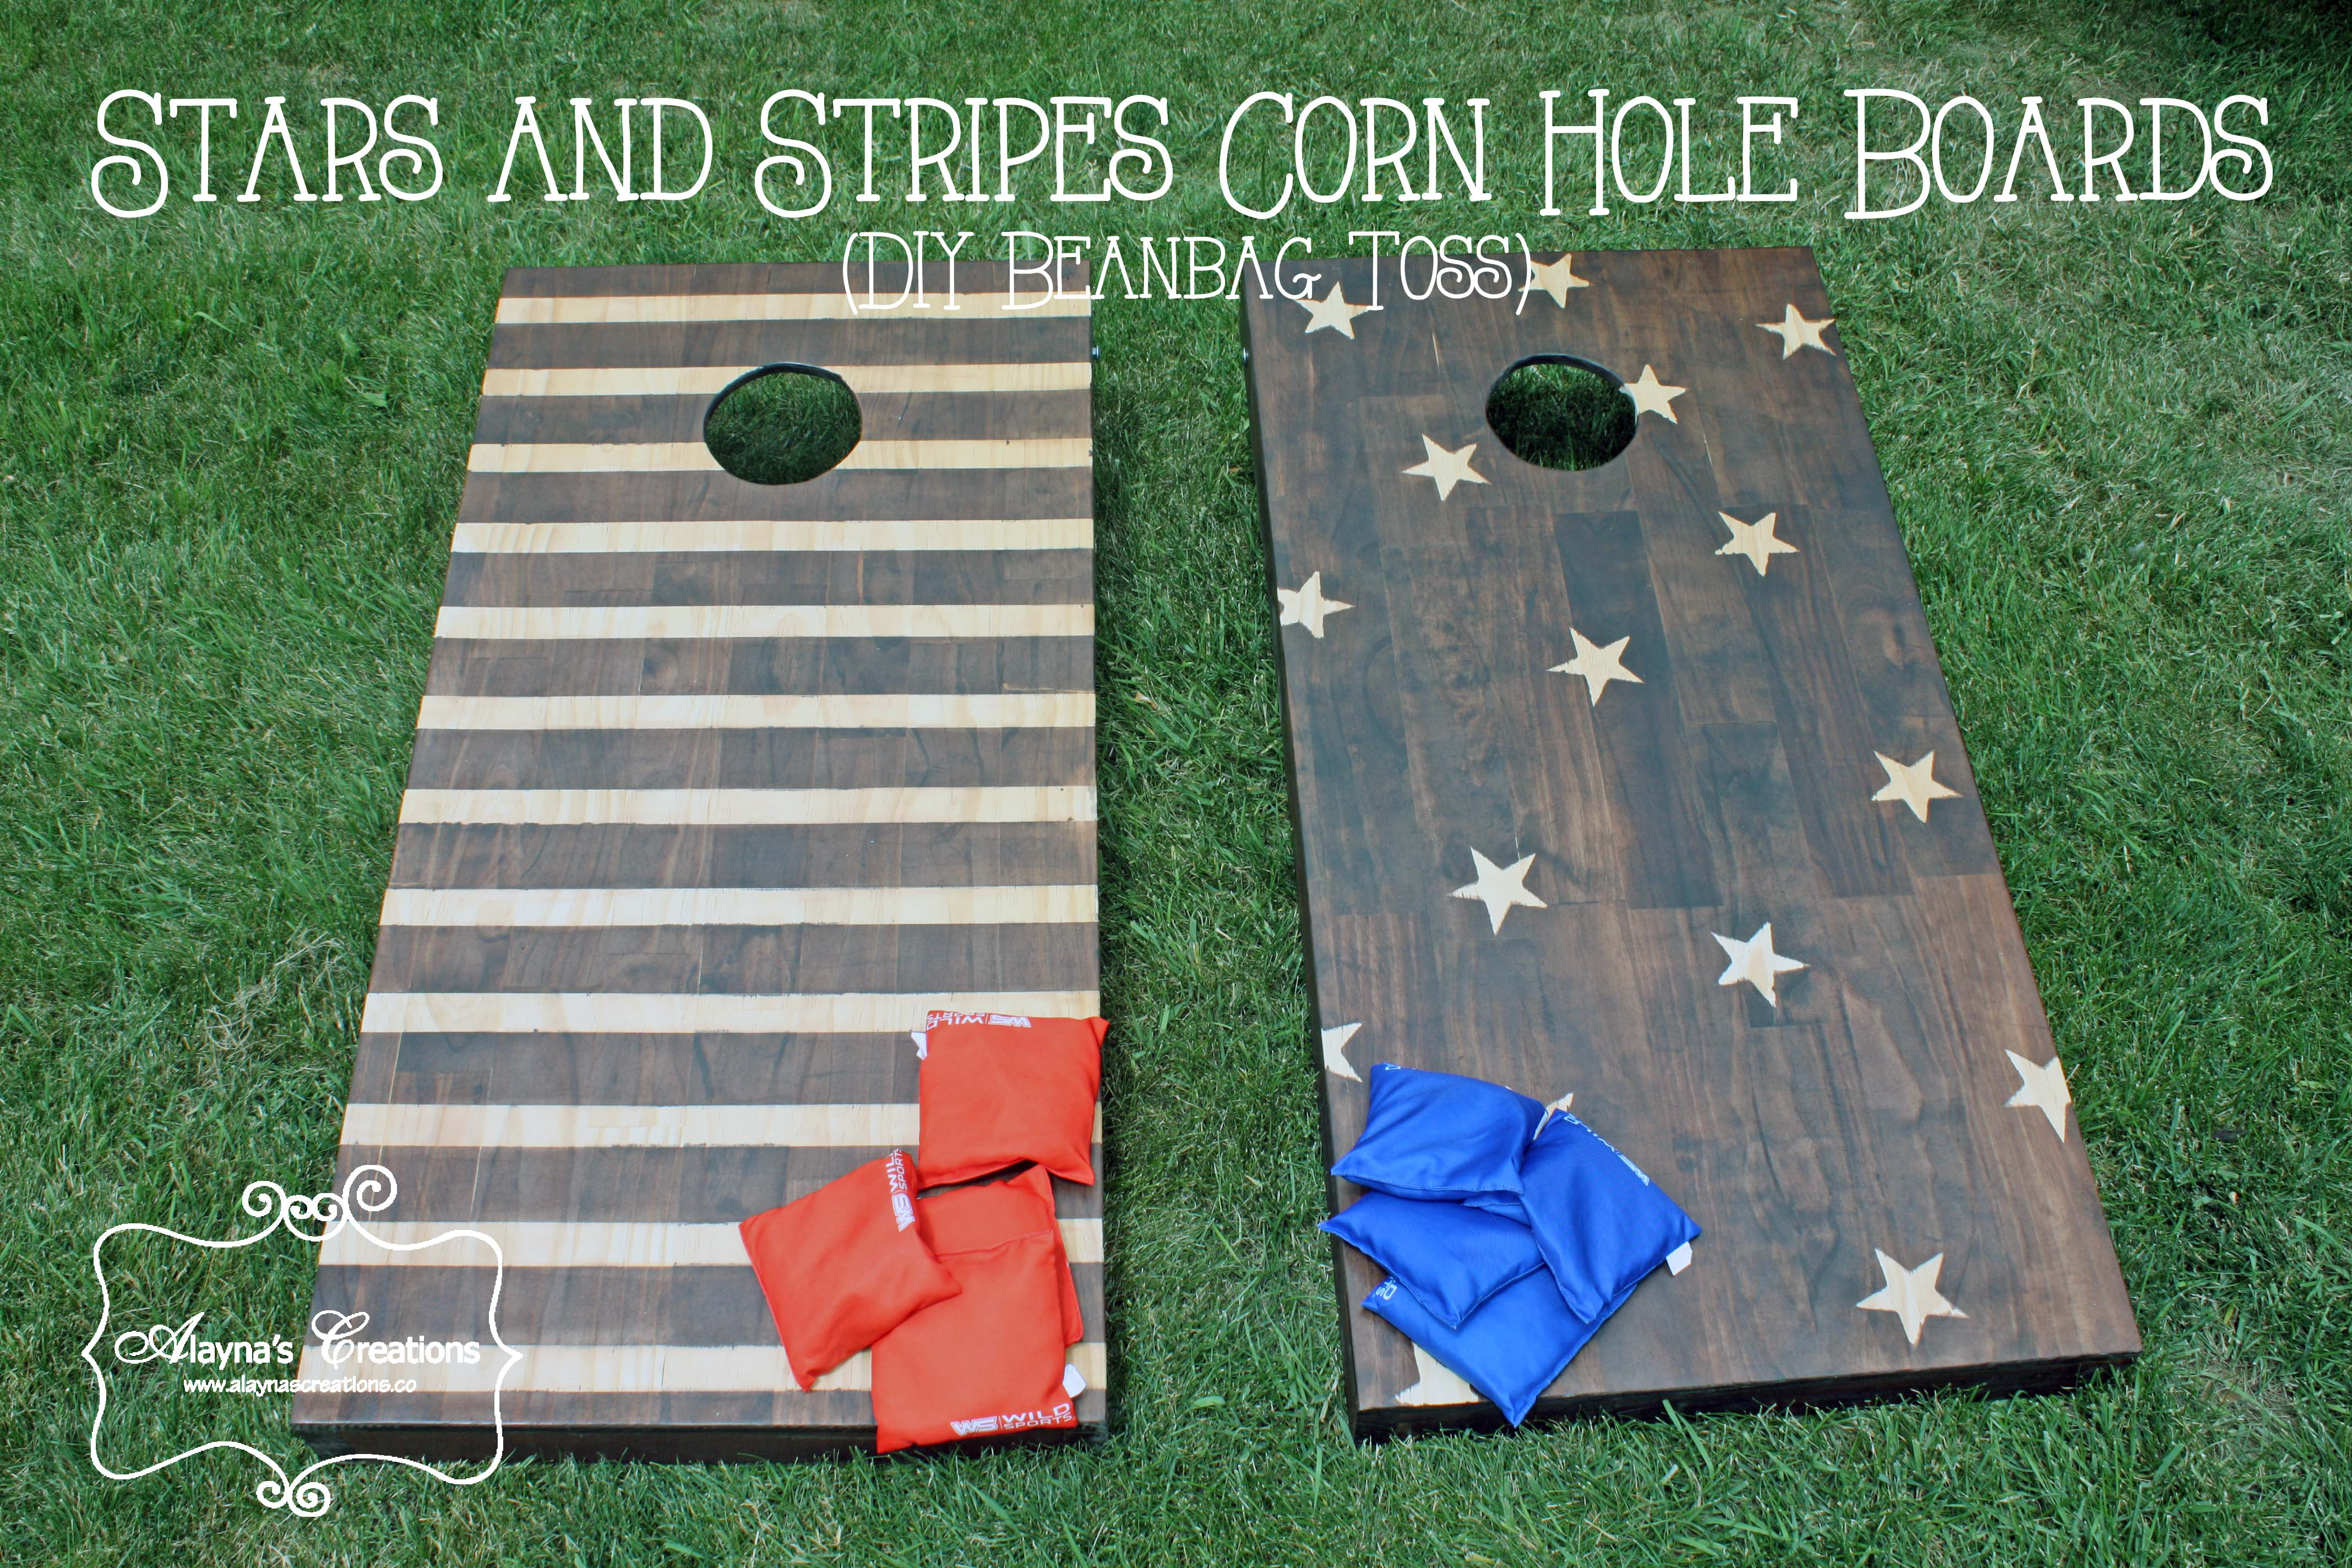 Miraculous Stars And Stripes Corn Hole Boards Diy Tutorial Diy Home Uwap Interior Chair Design Uwaporg